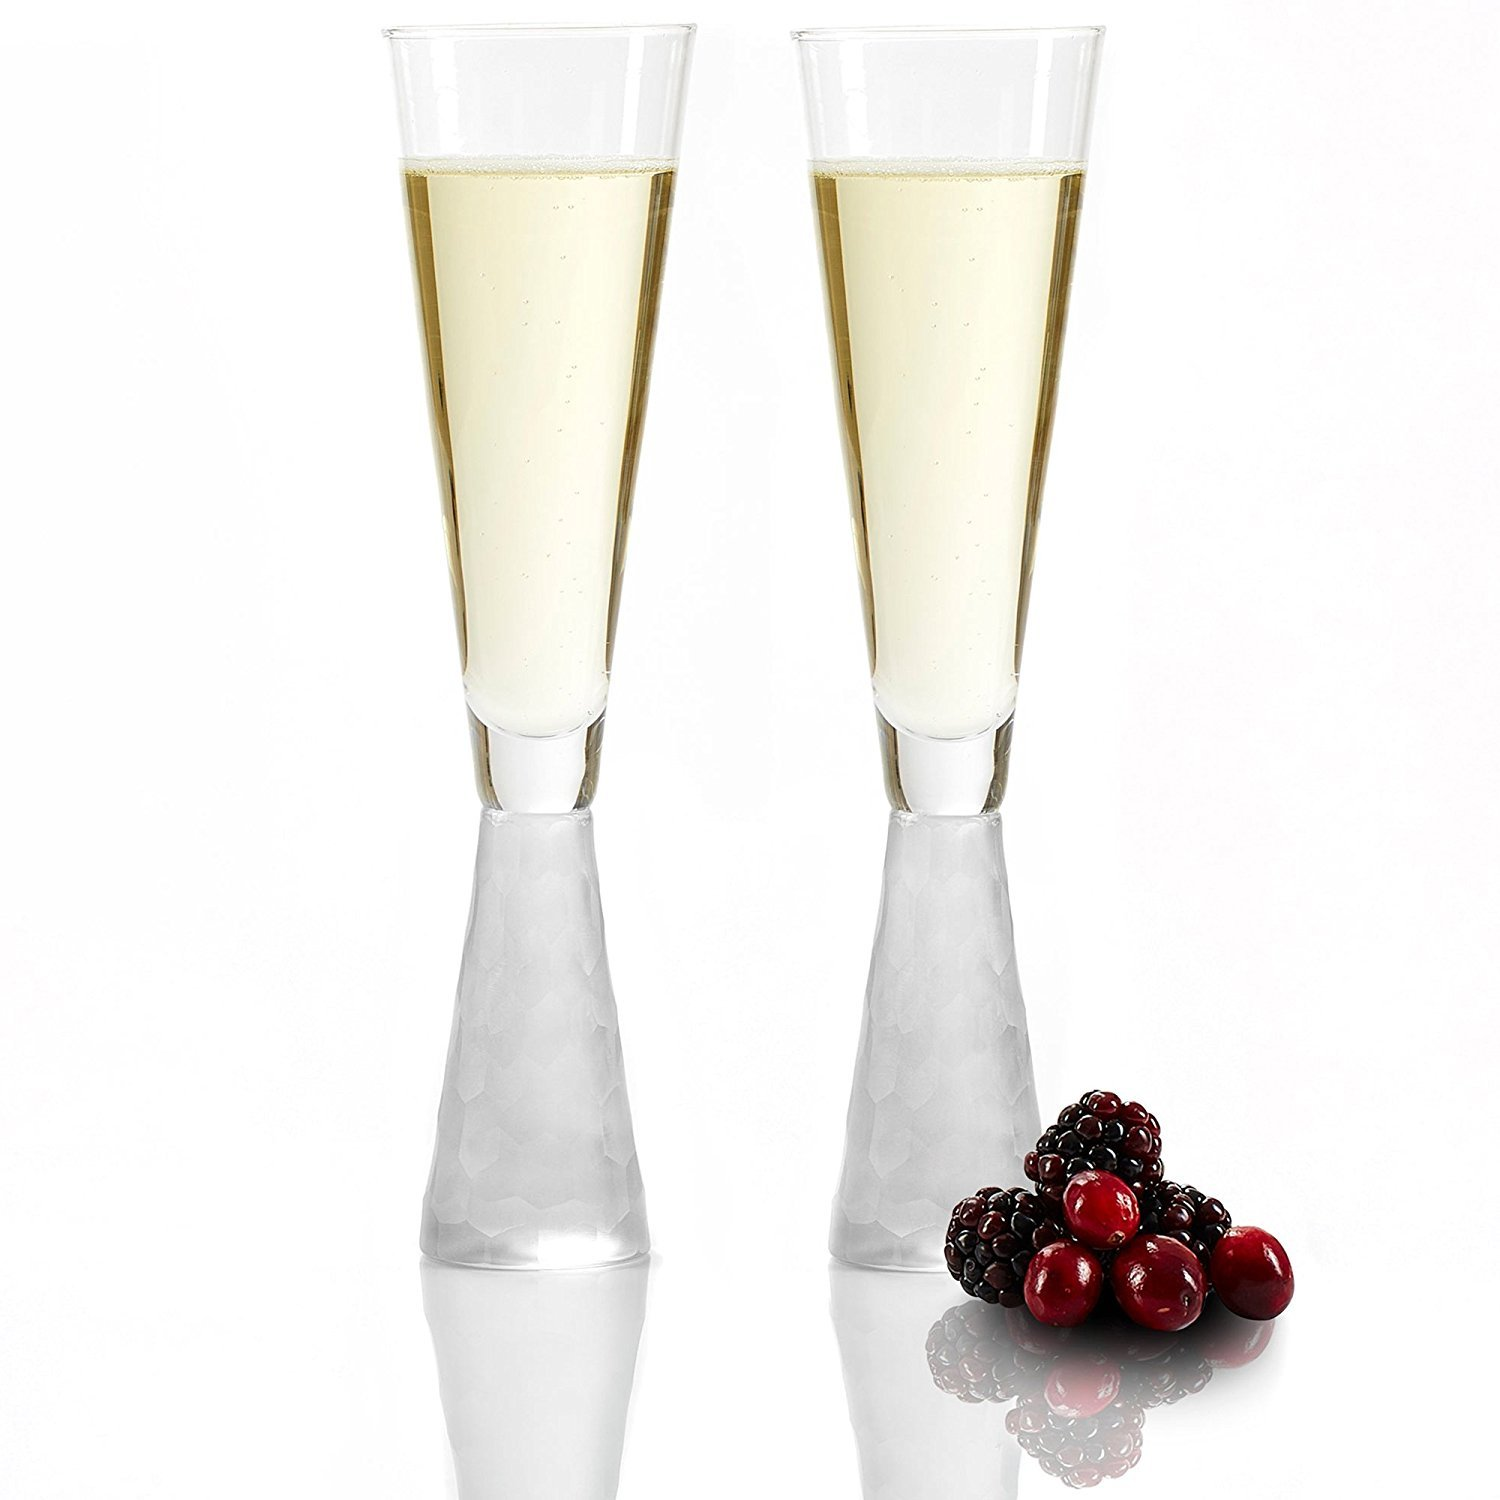 Andrew James Champagne Glasses | Set of 2 Champagne Flutes with Shimmering Frosted Bases | Also Suitable for Serving Sparkling Wine and Prosecco | 180ml | Dishwasher Safe